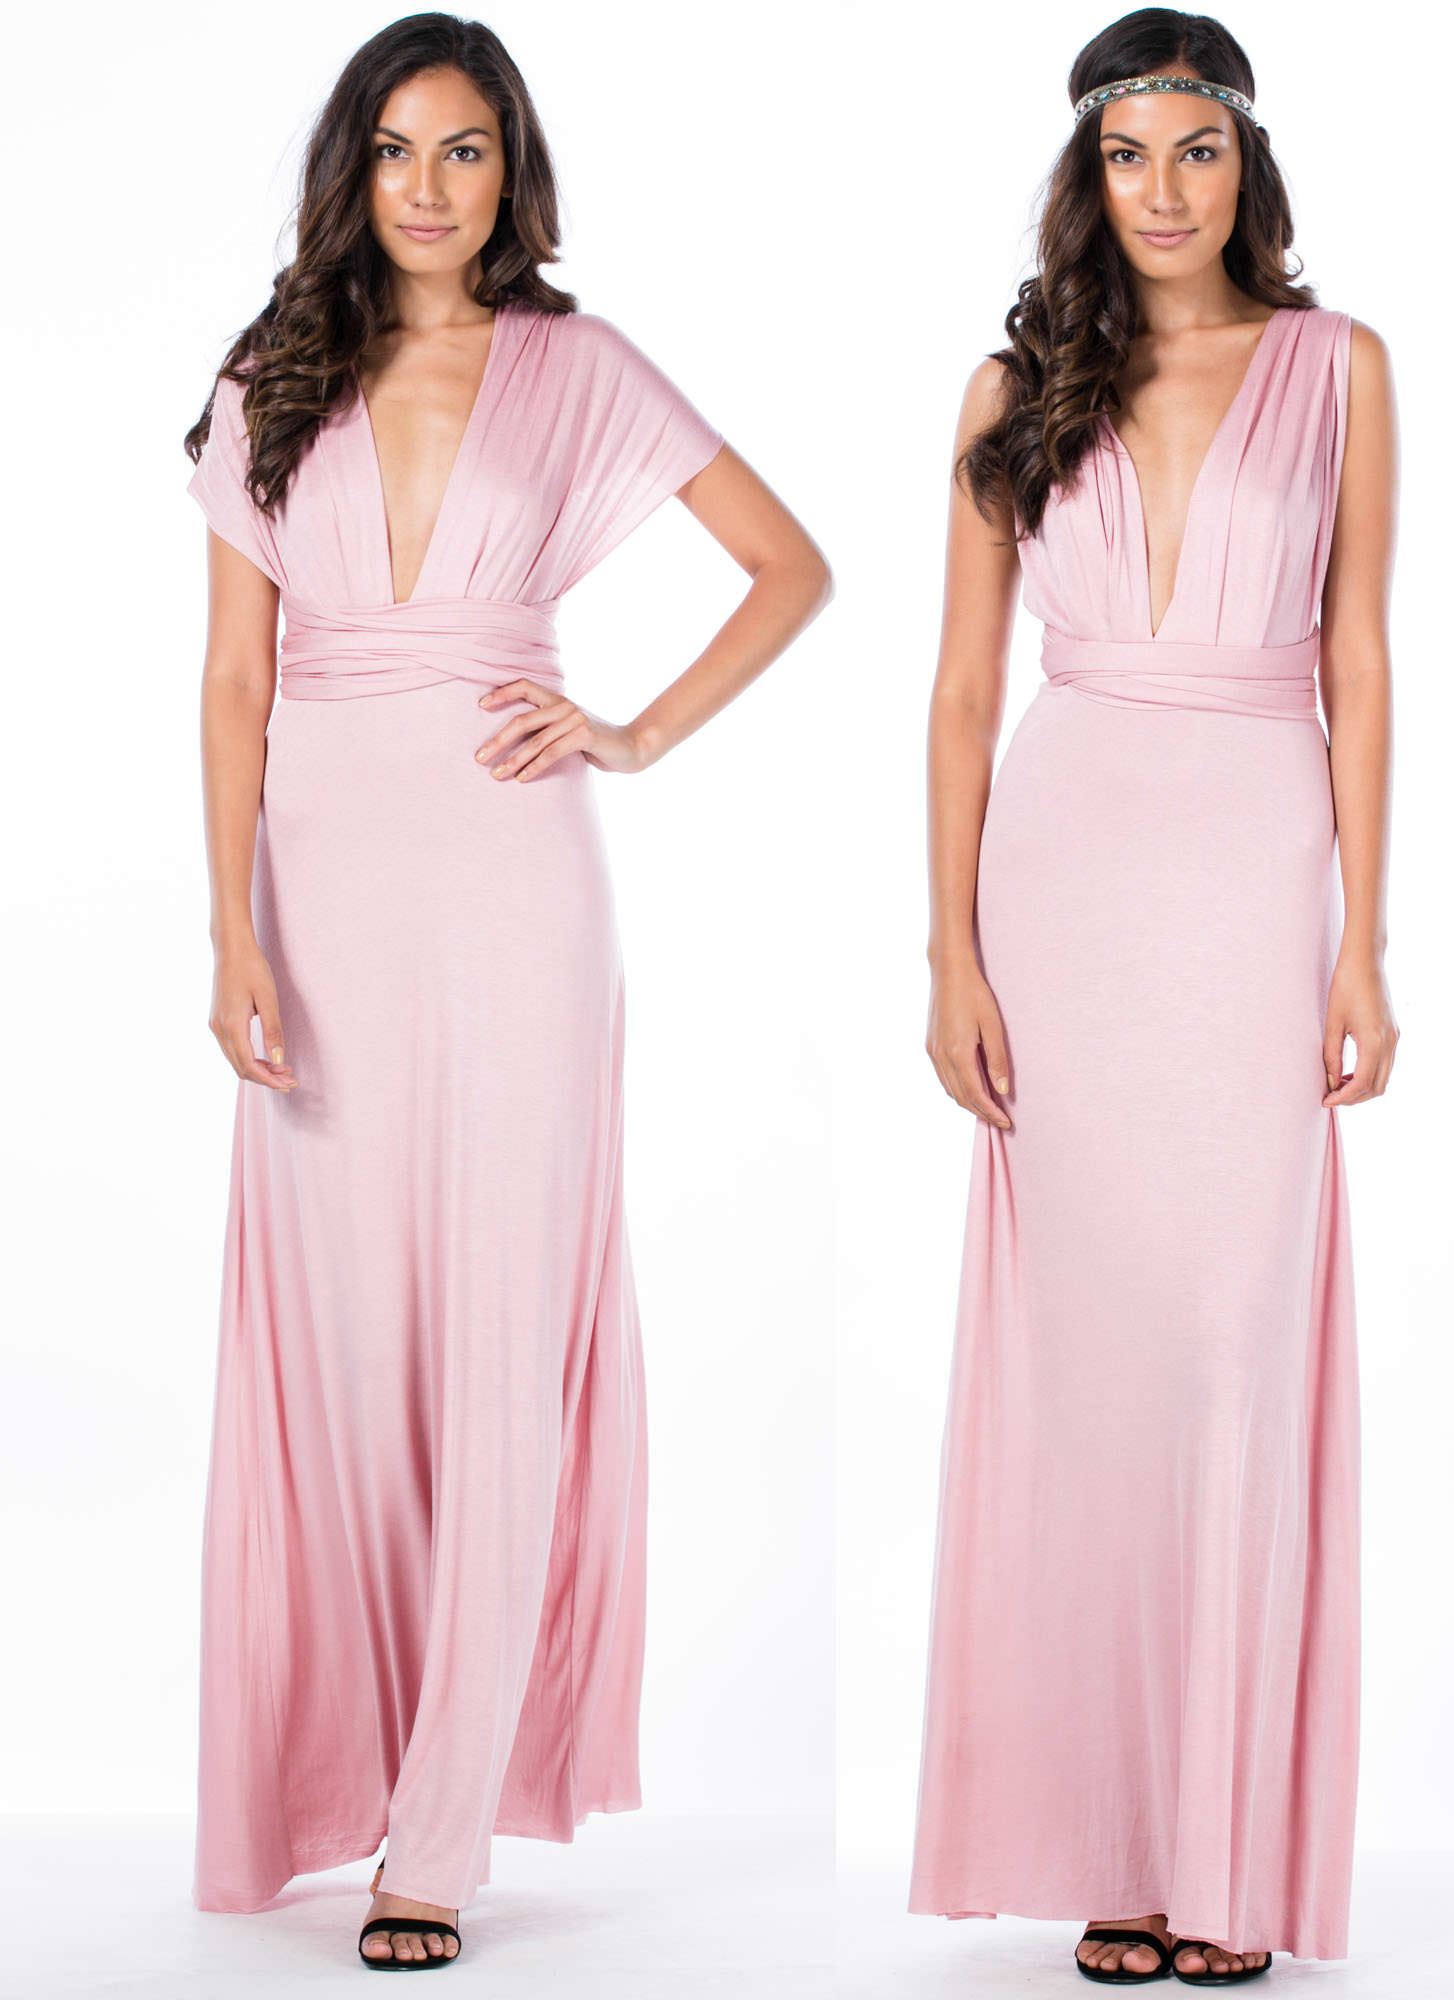 Chic-Shifter Convertible Maxi Dress BLUSH